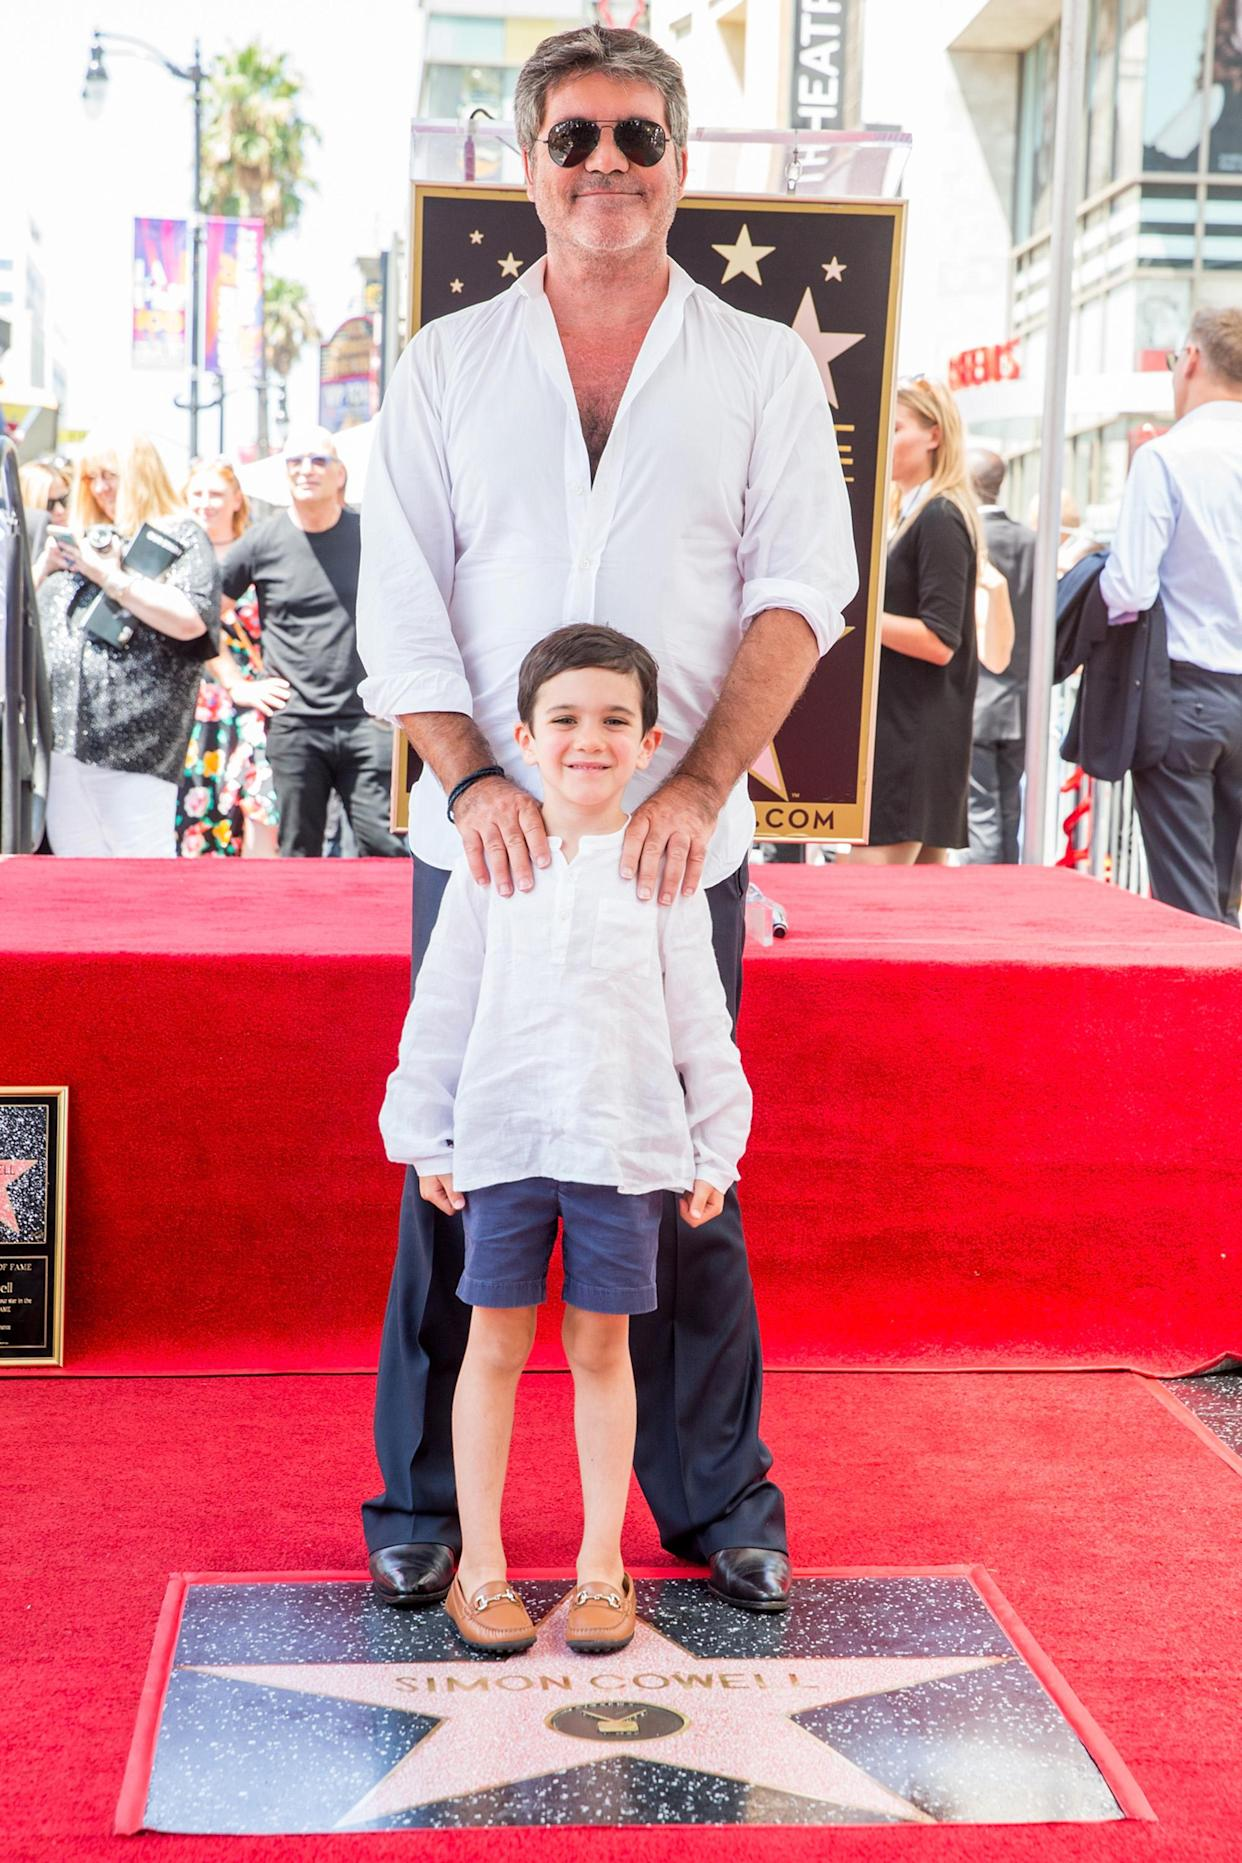 Simon Cowell and son Eric at a ceremony honoring Cowell with a star on the Hollywood Walk of Fame on Aug. 22, 2018. (Photo: Rich Fury/Getty Images)